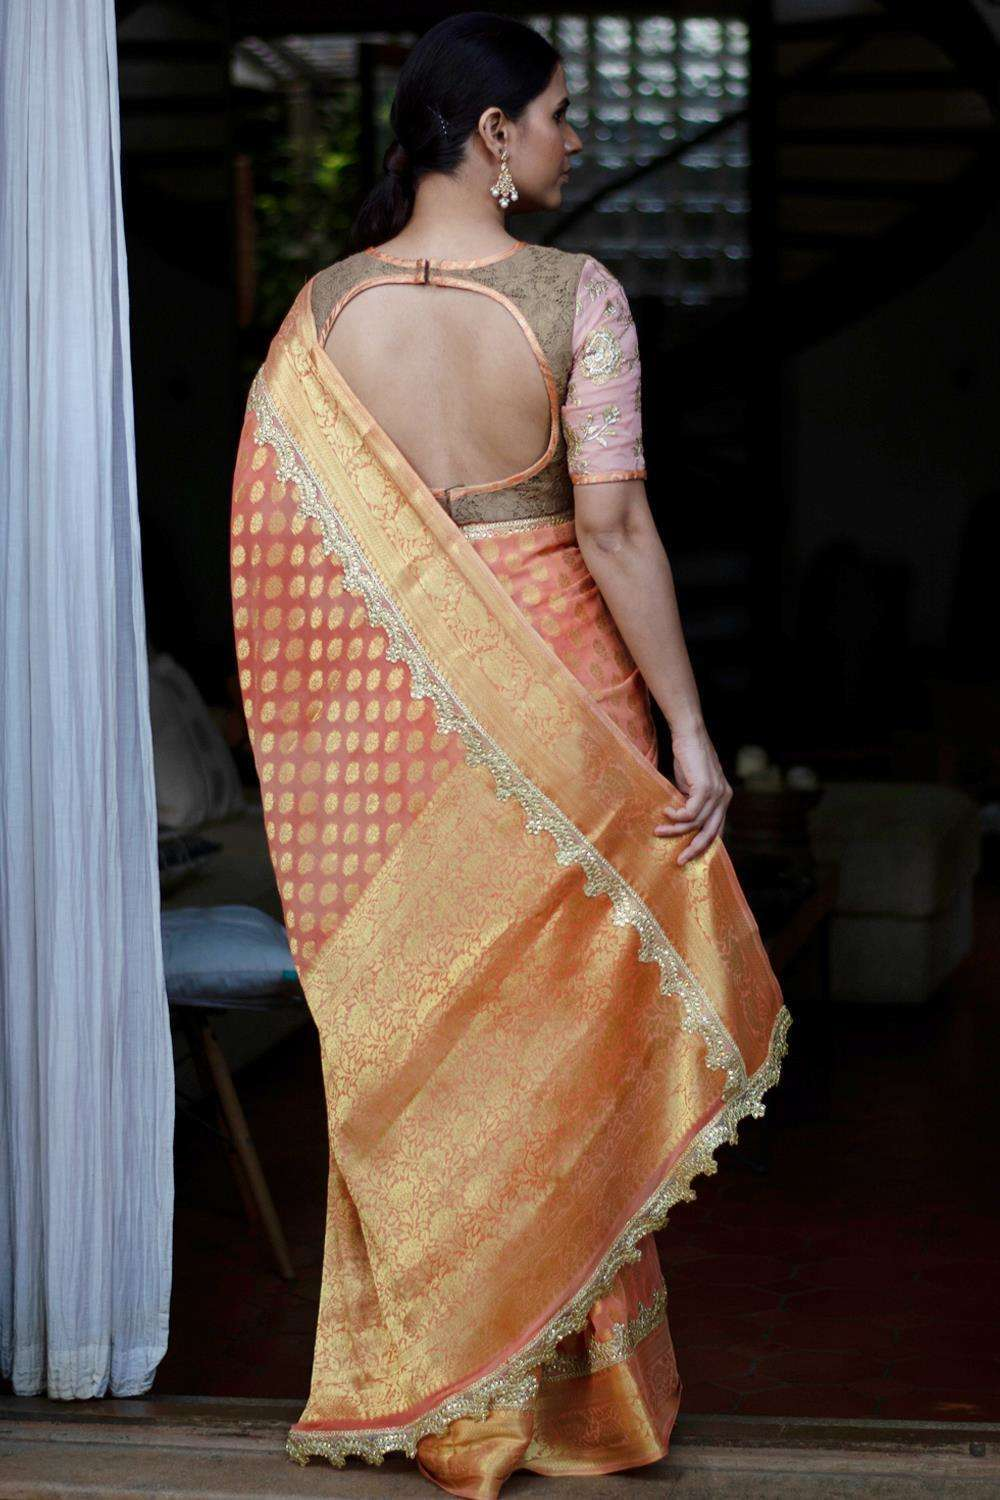 Banarasi chiffon saree in pale orange, with zari buttis and a kundan worked border - House of Blouse